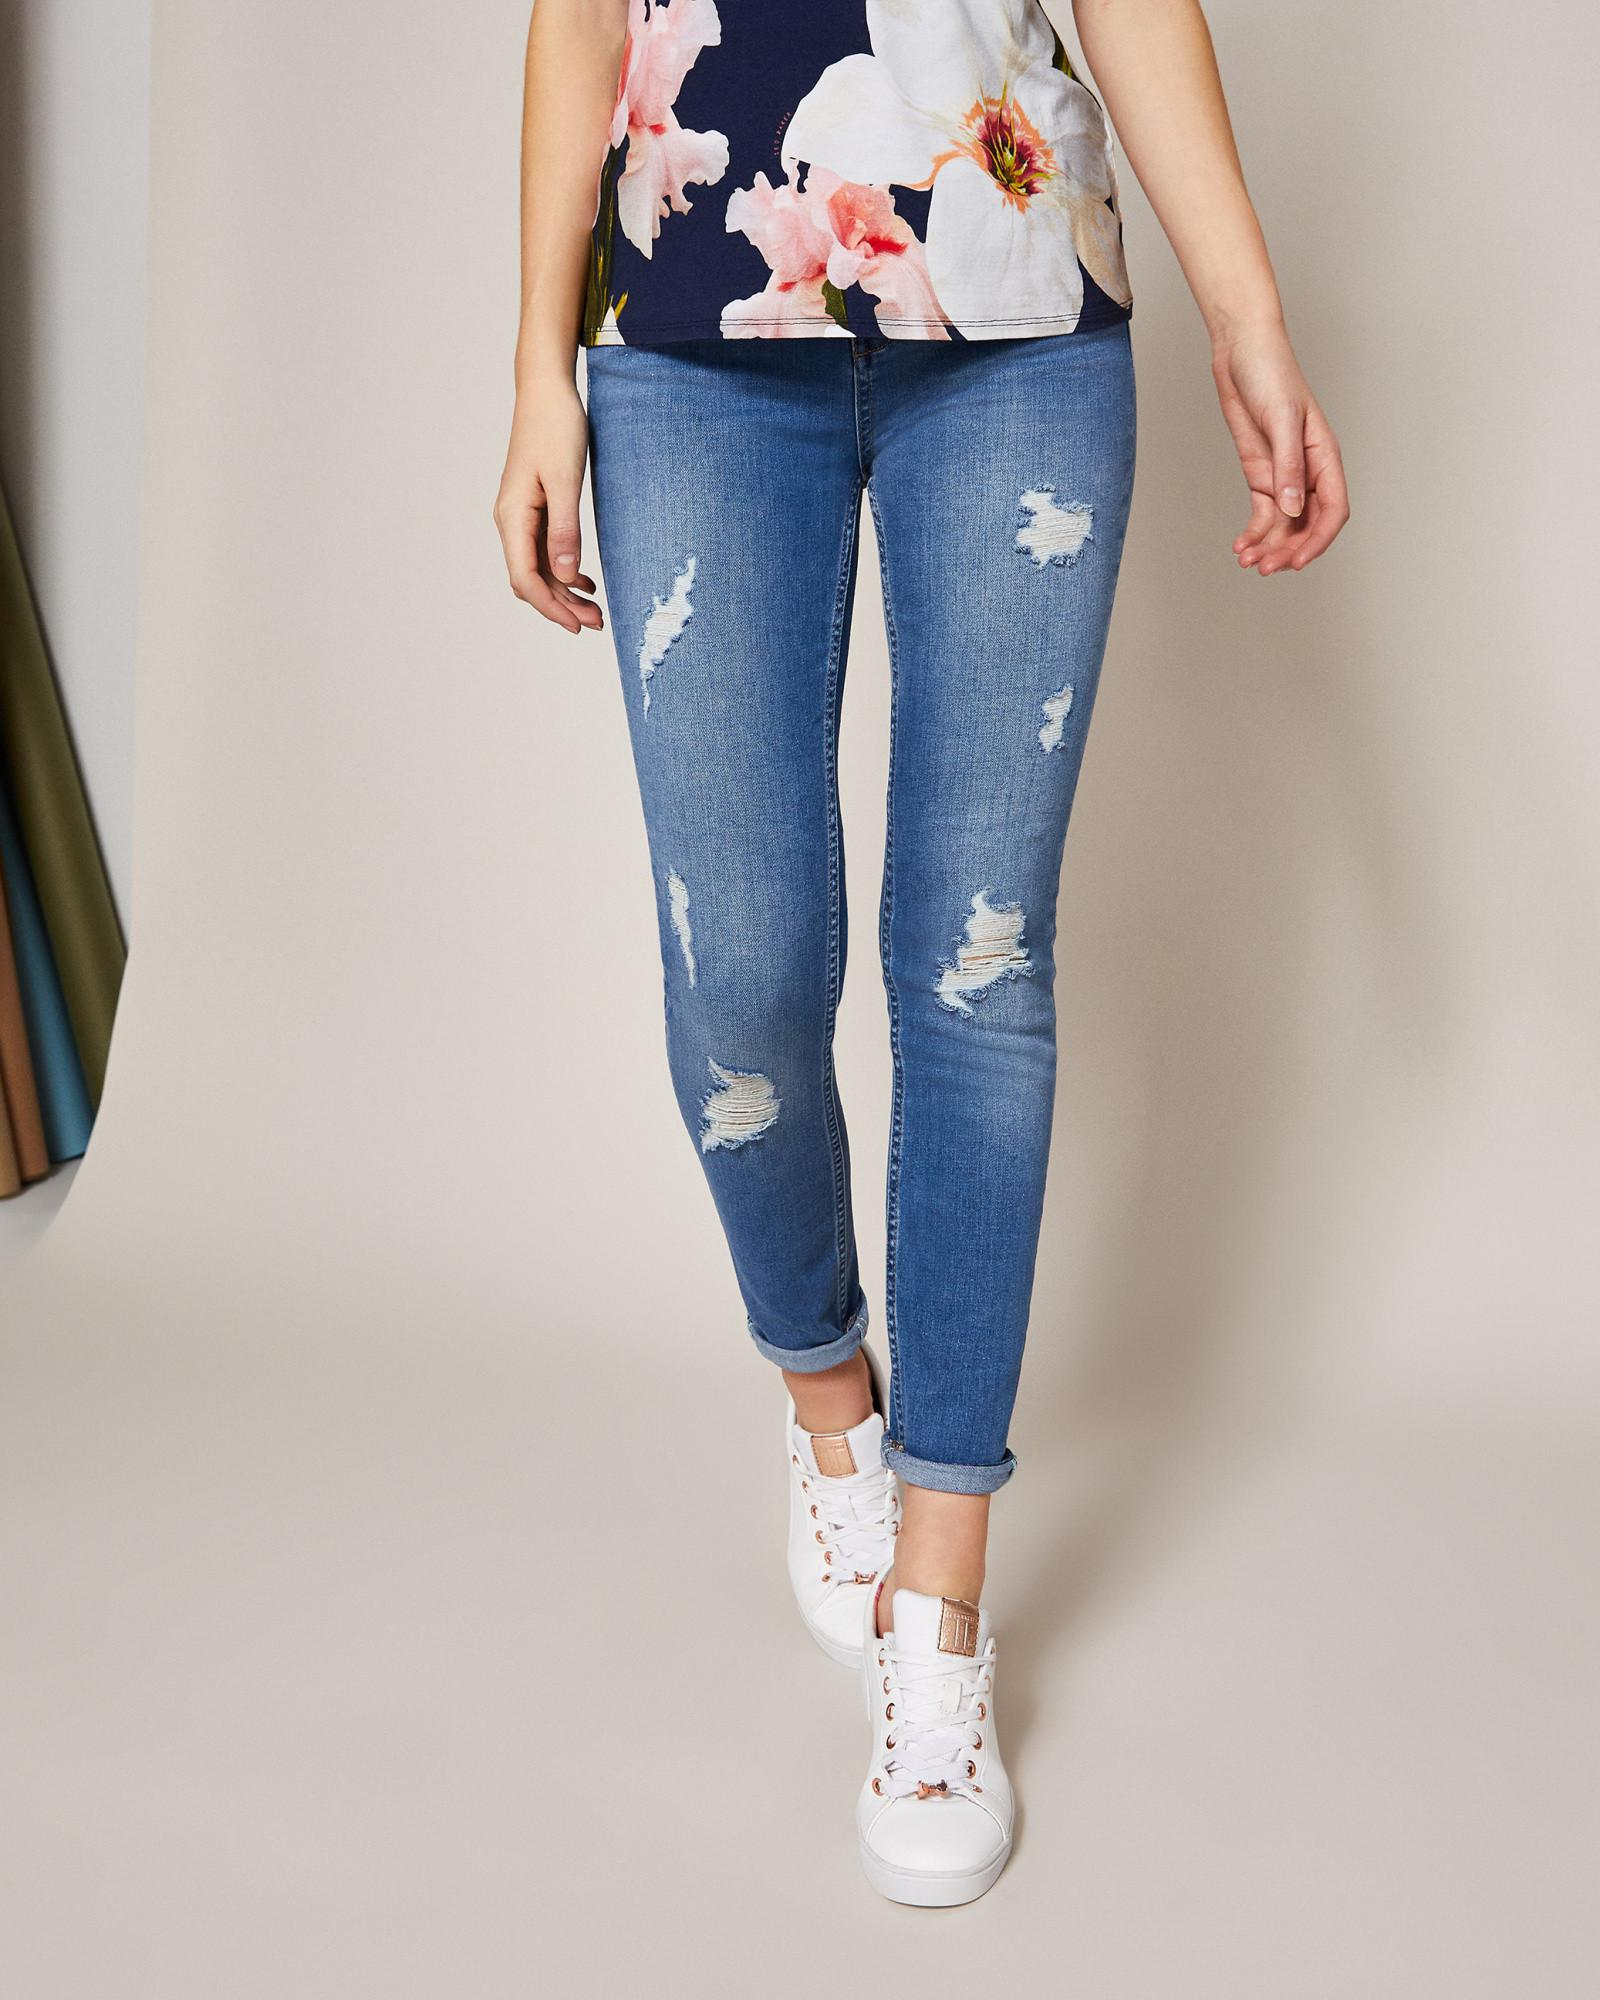 1afe09040e10a7 Ted Baker Ripped Skinny Jeans in Blue - Lyst